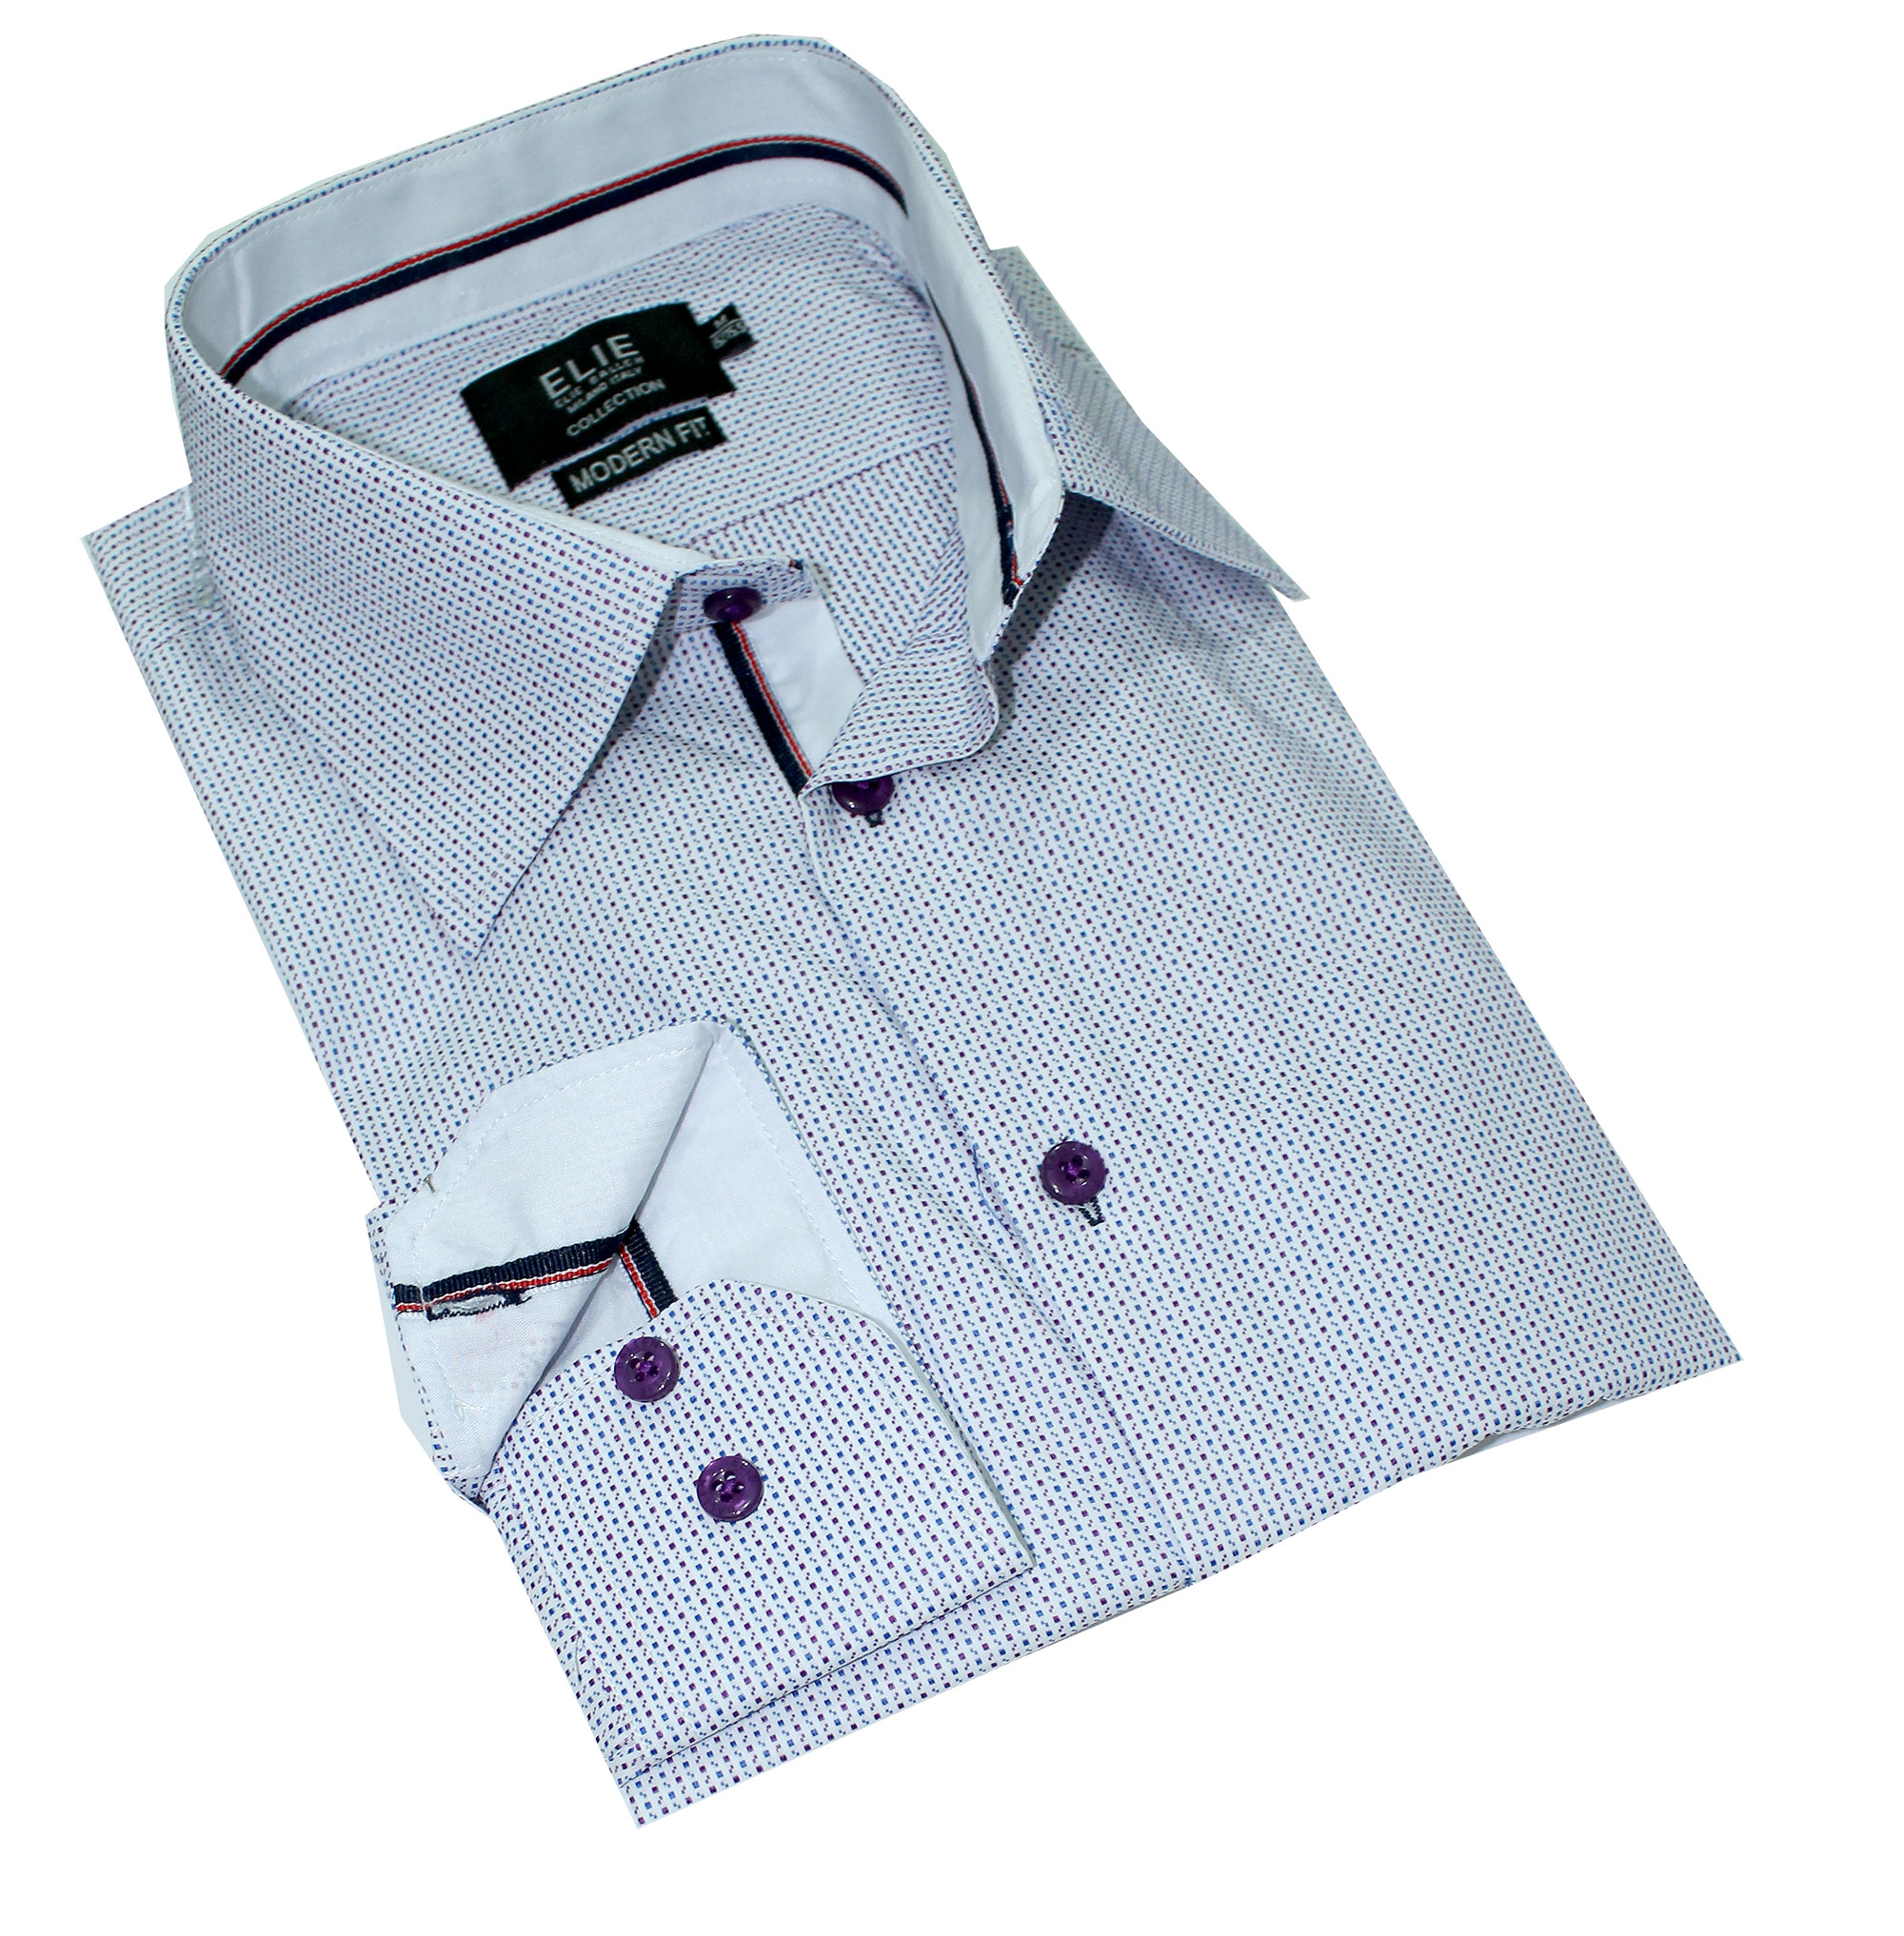 Doted premium Men Shirts / Button Down CEBSH302M